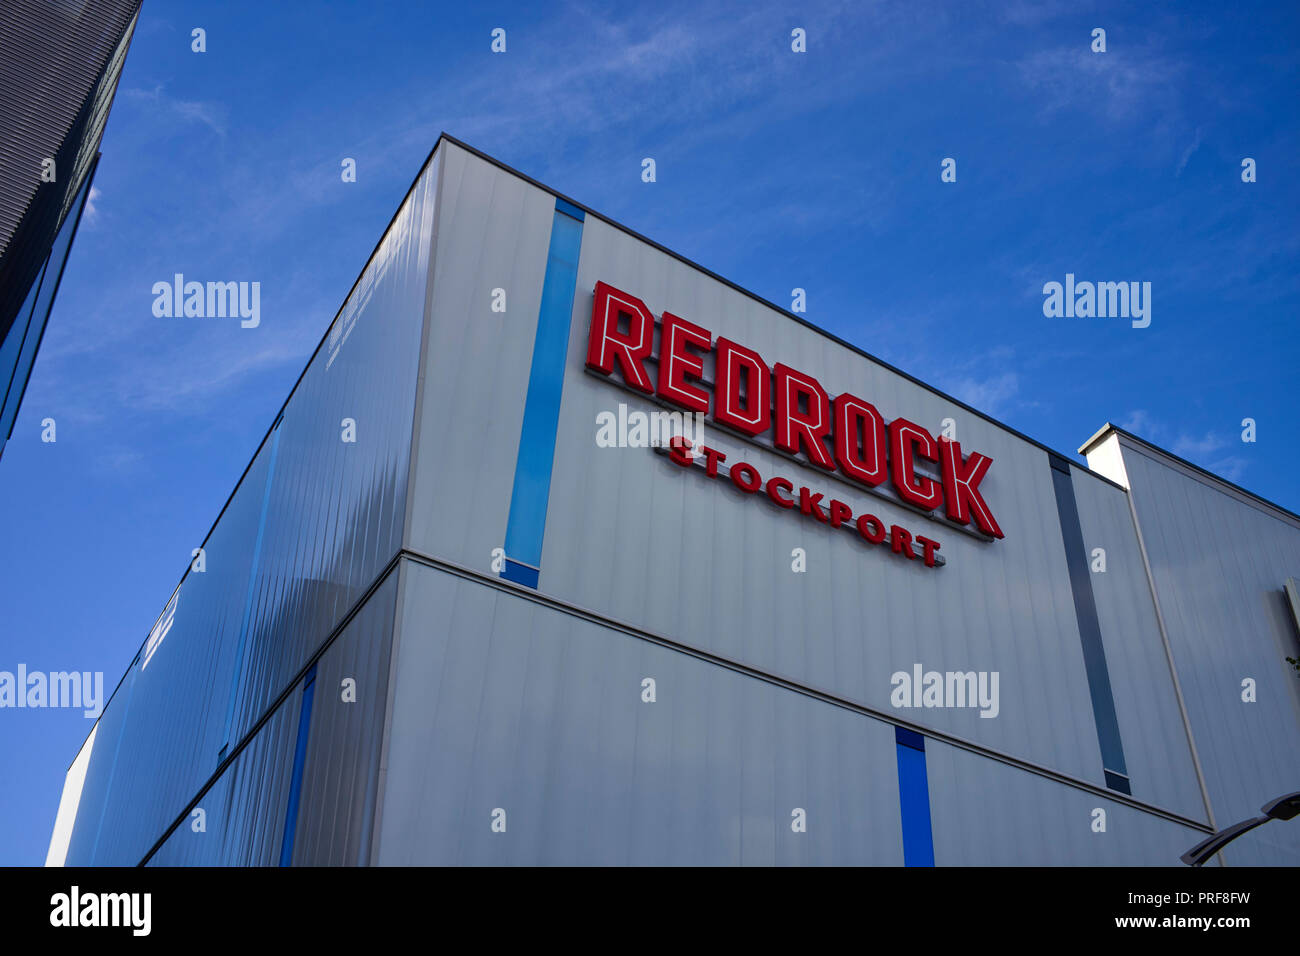 Redrock building signage in Stockport - Stock Image